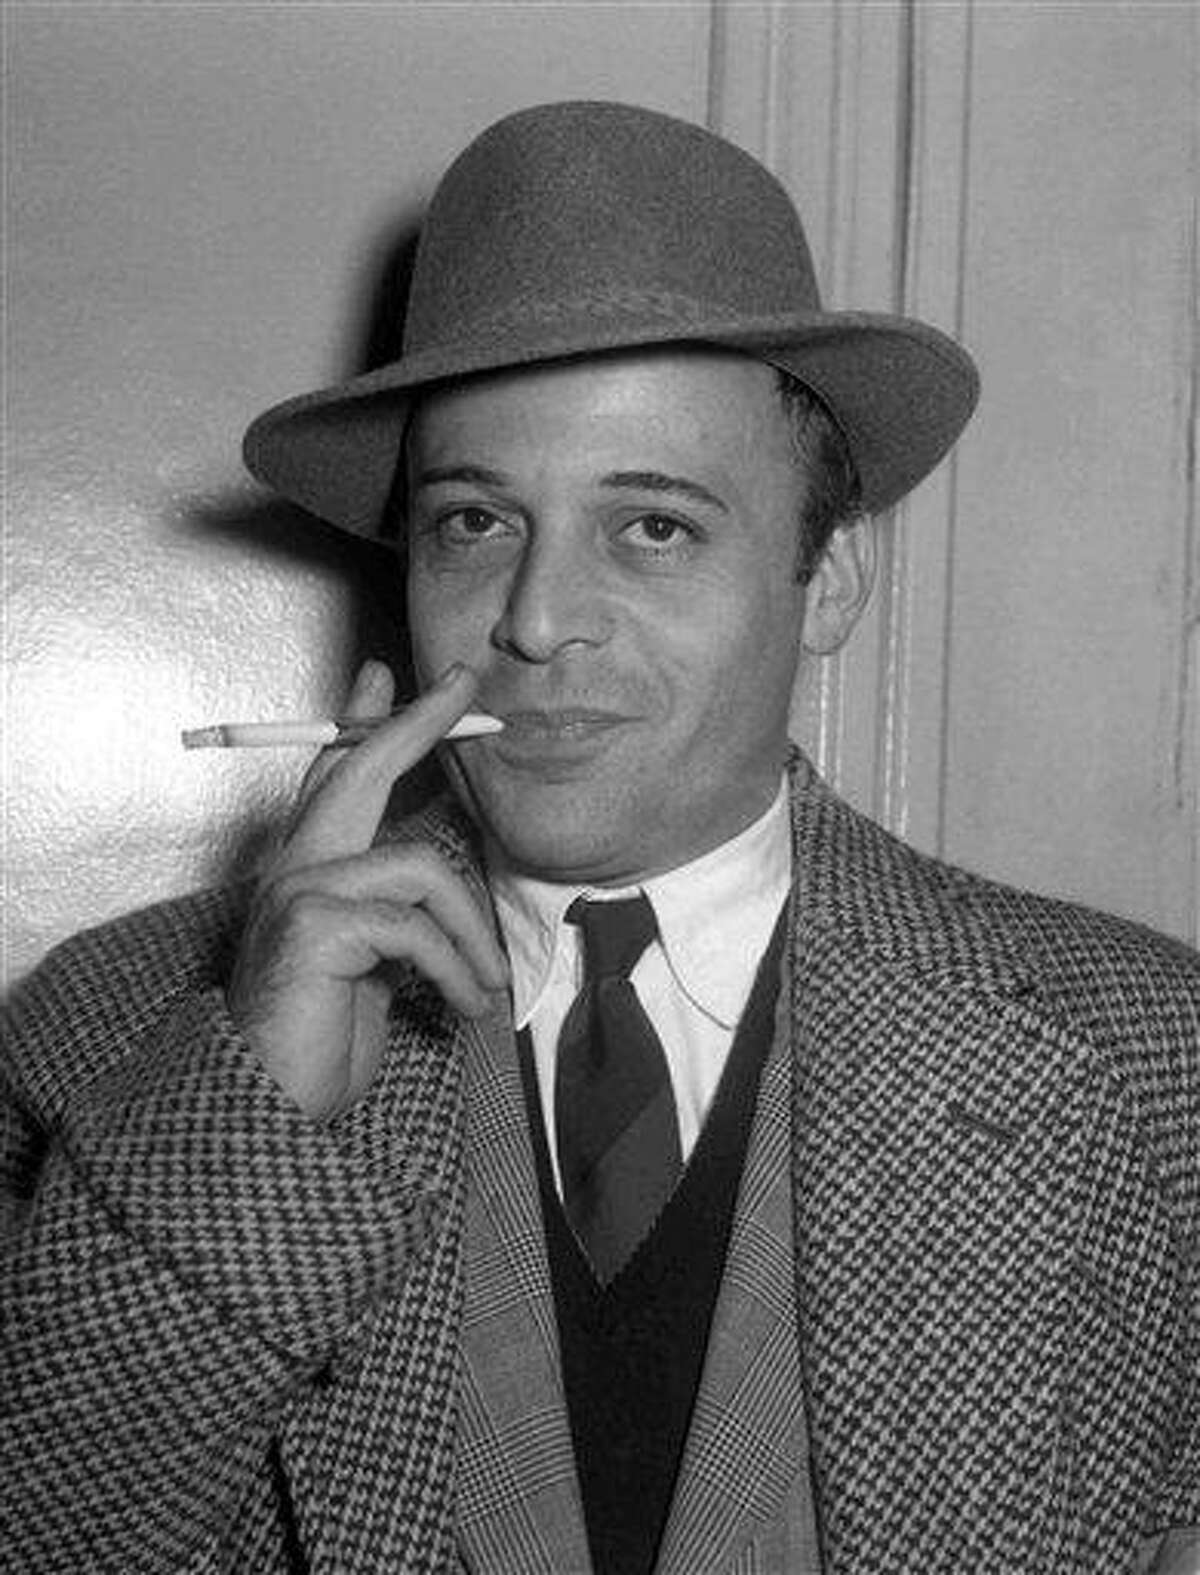 A 1955 file photo shows British actor Herbert Lom at London Airport prior to his departure to Rome, to continue filming 'War and Peace'. The Czech-born actor who starred as Inspector Clouseau's boss in the Pink Panther movies, has died. He was 95. Associated Press